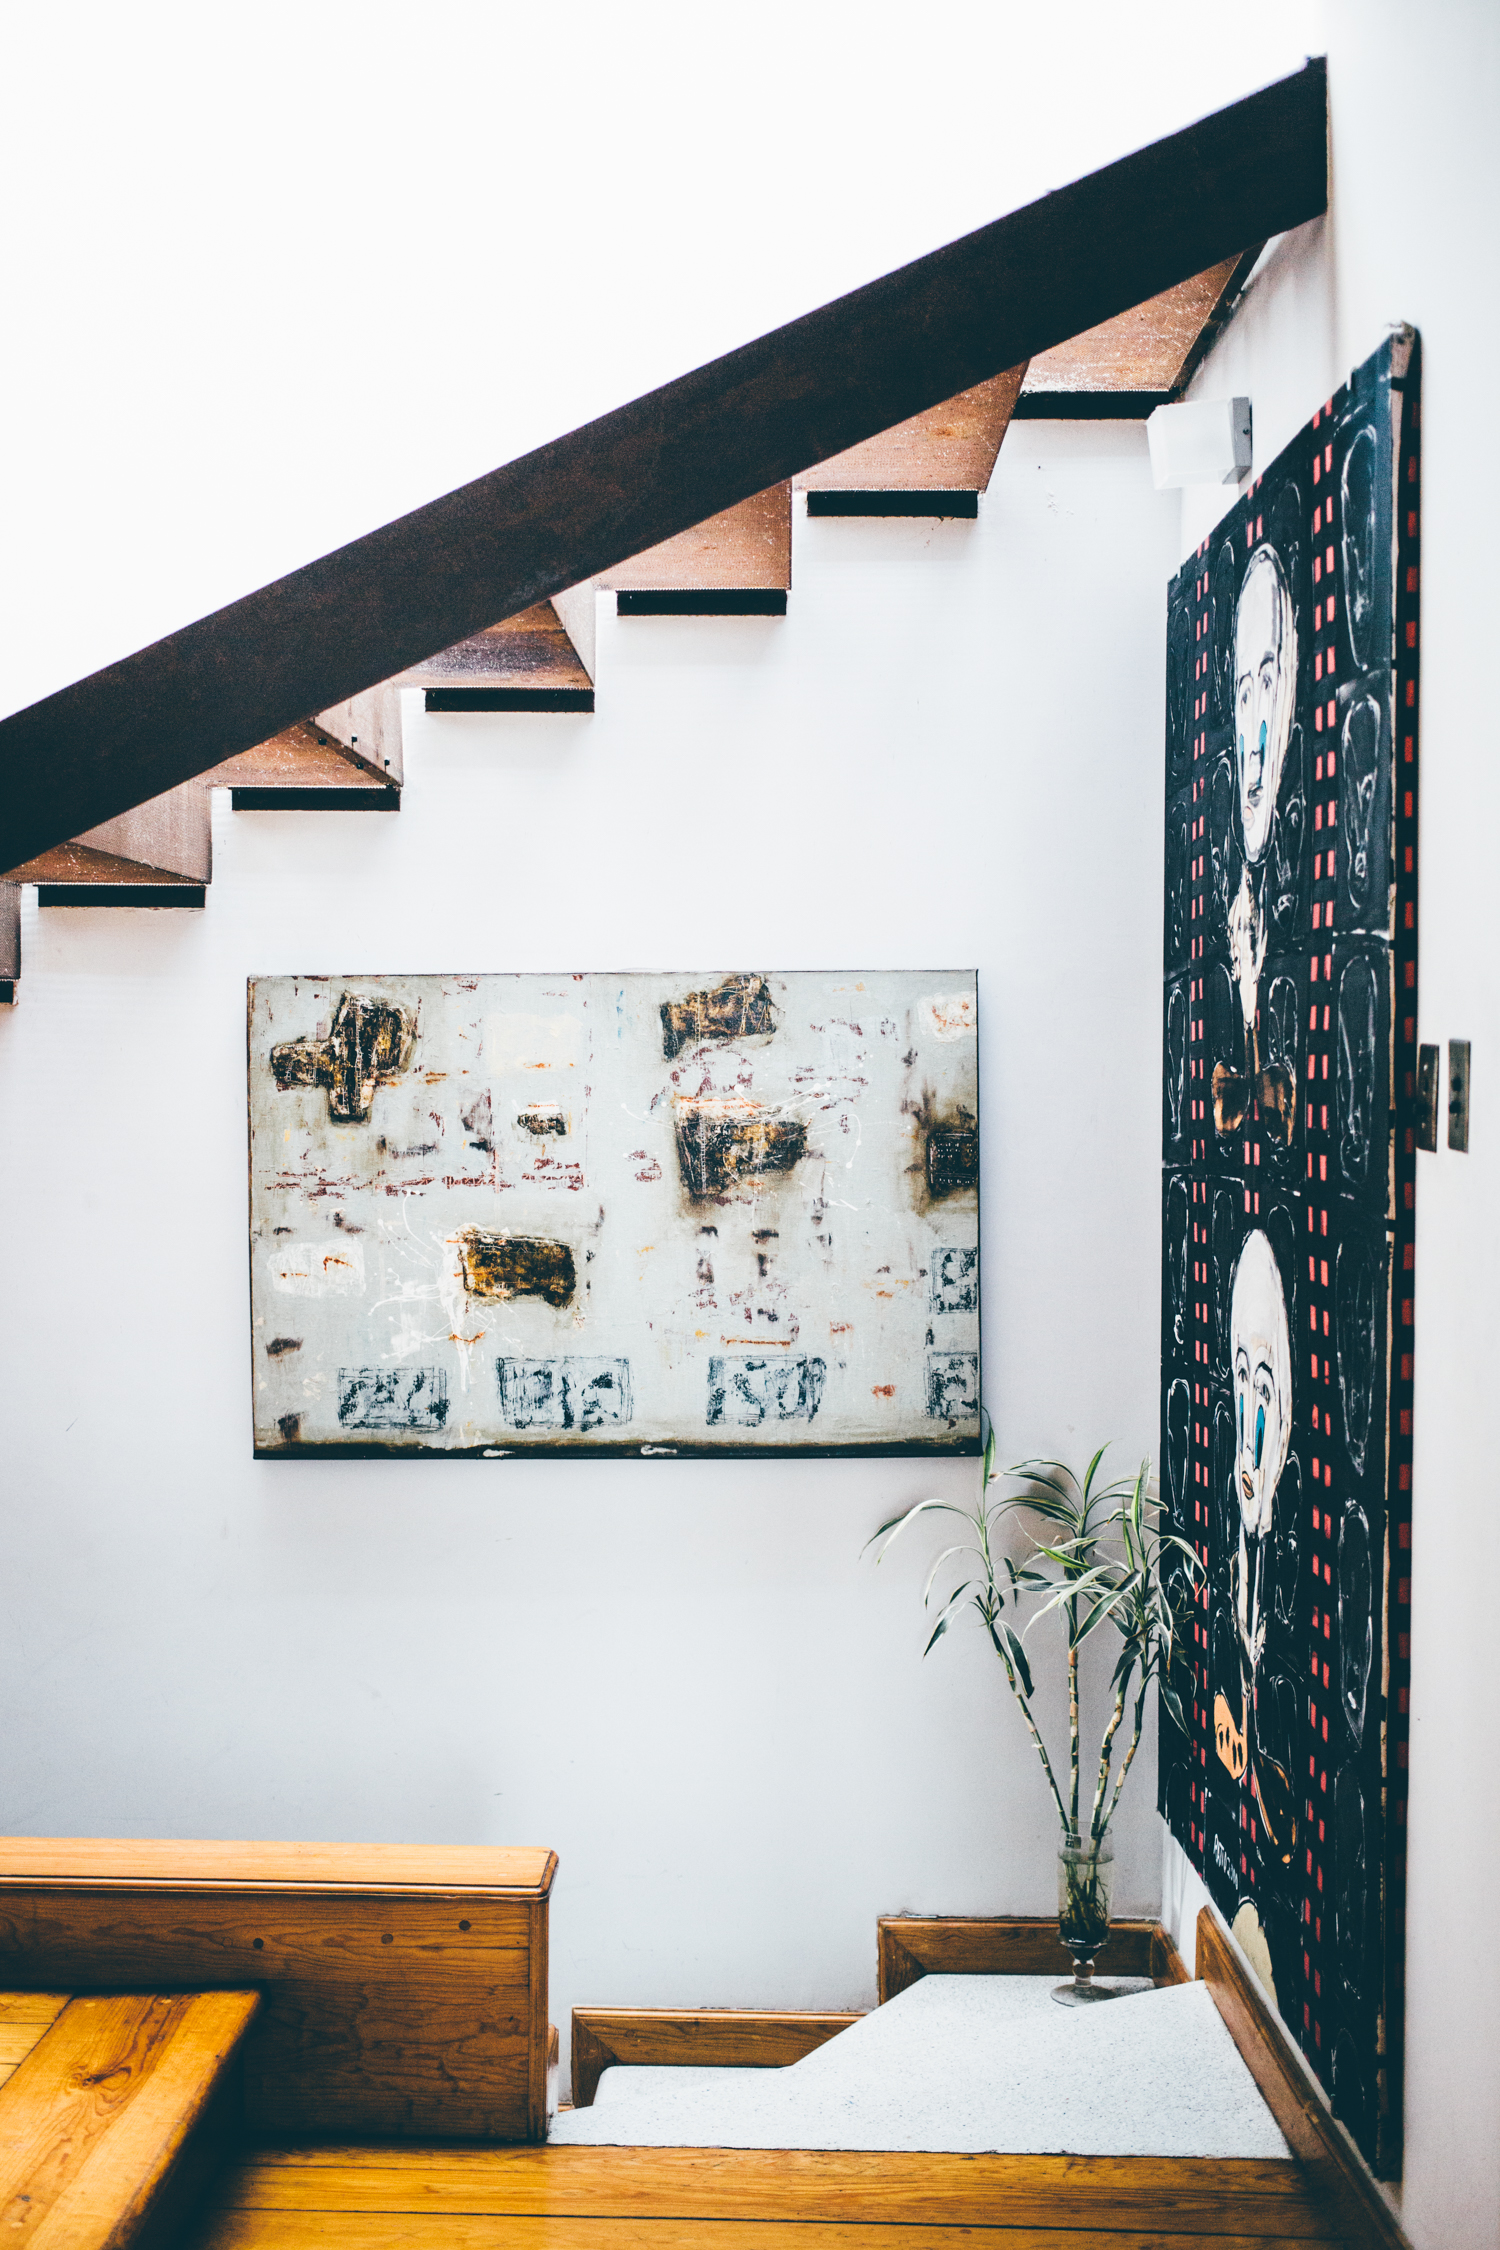 Copy of Interior staircase and wall art